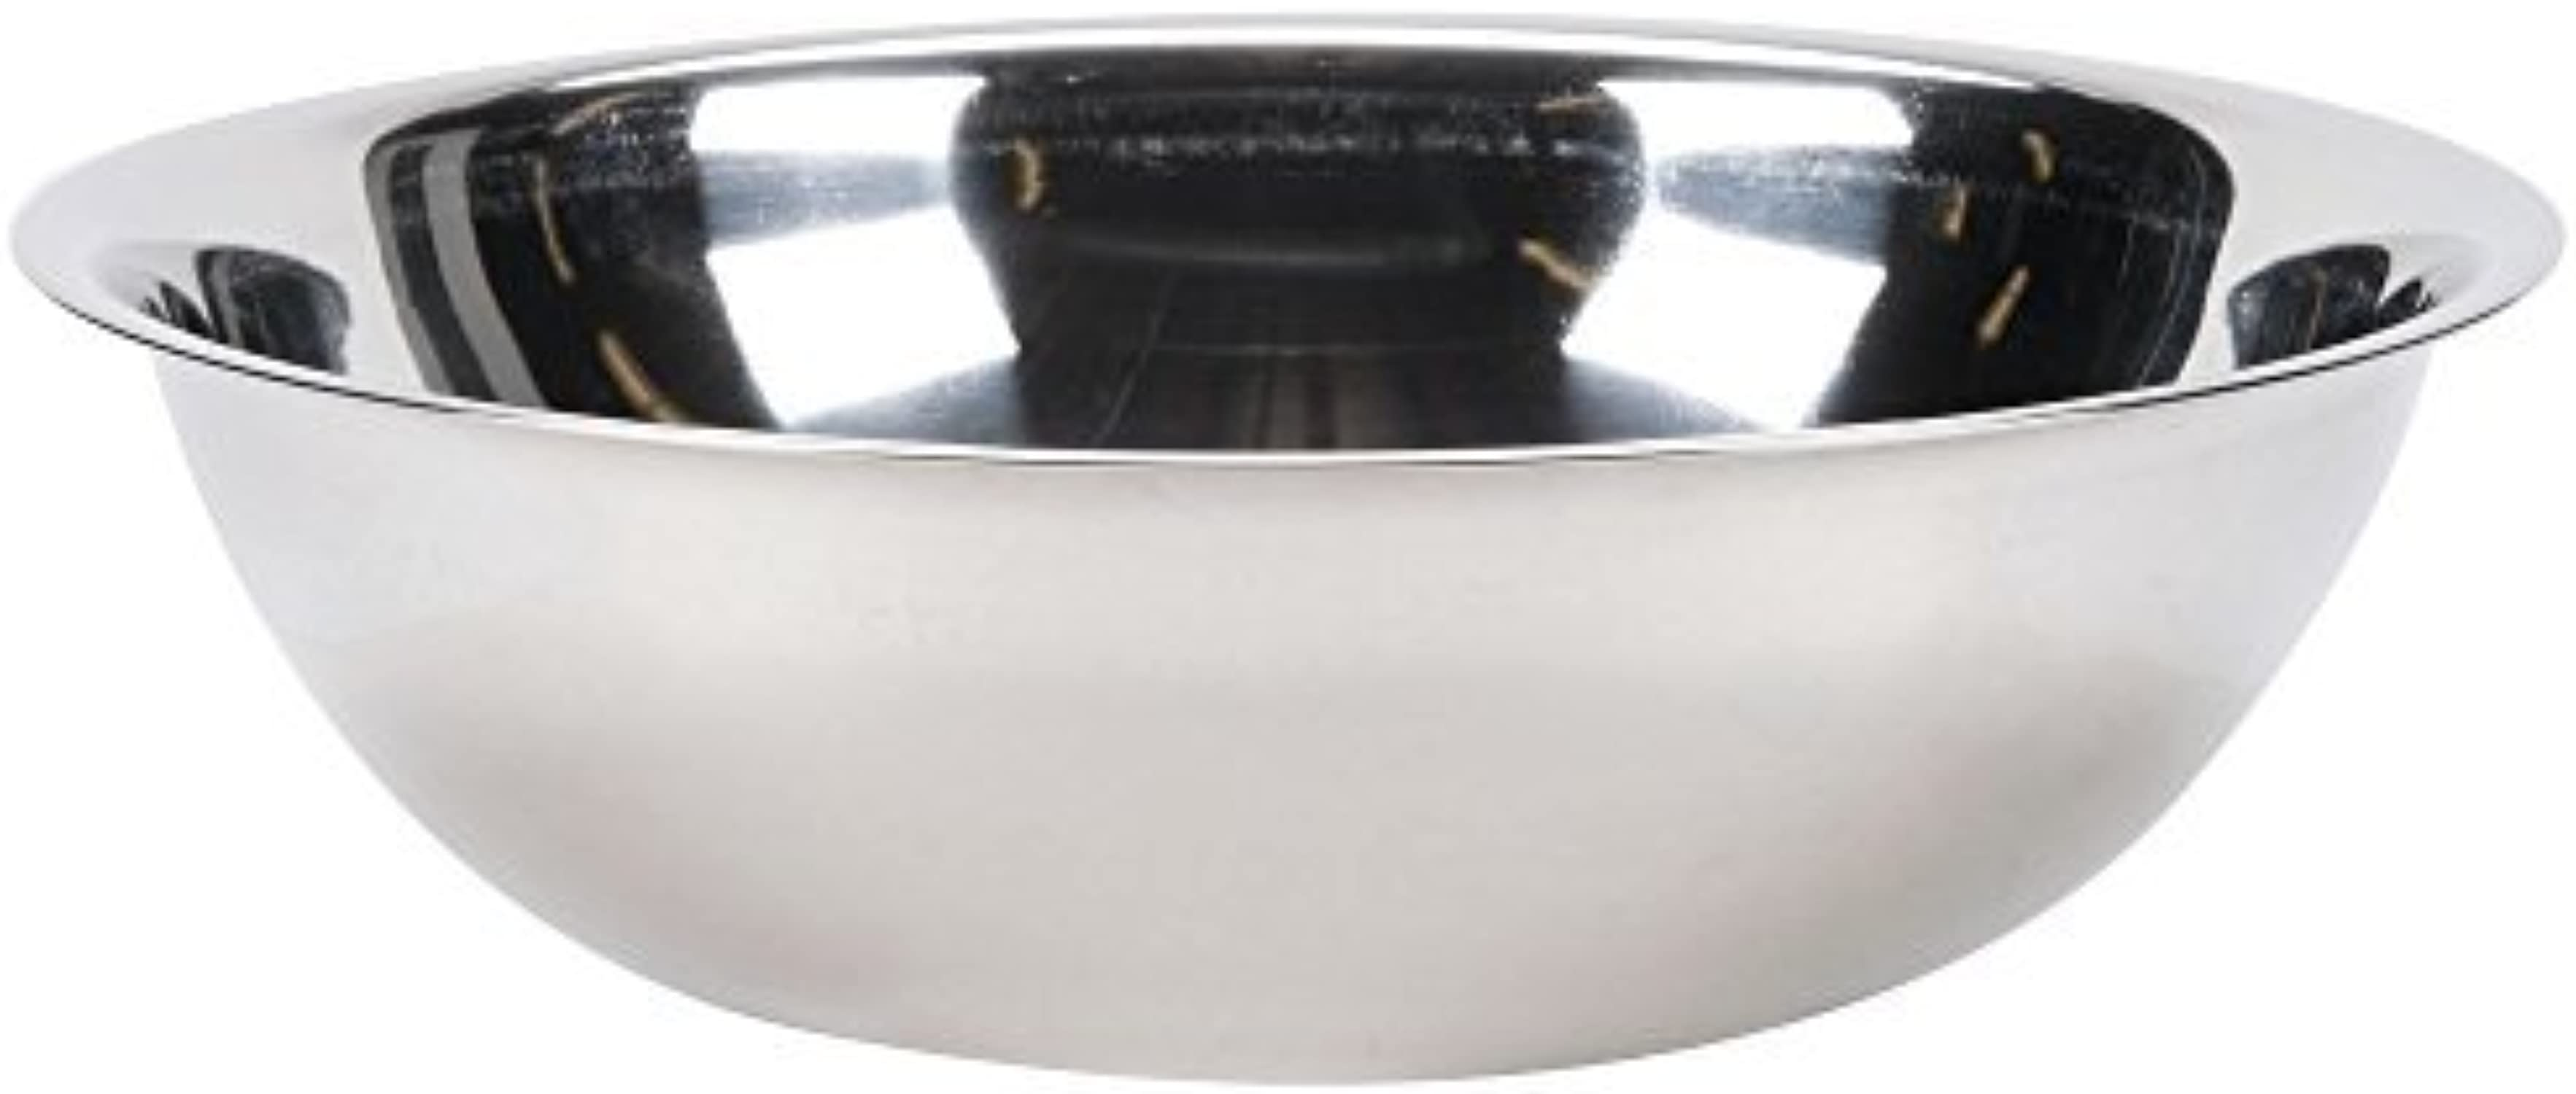 Vollrath 47946 Bright Mirror Finish S S Economy 16 Qt Mixing Bowl by Vollrath